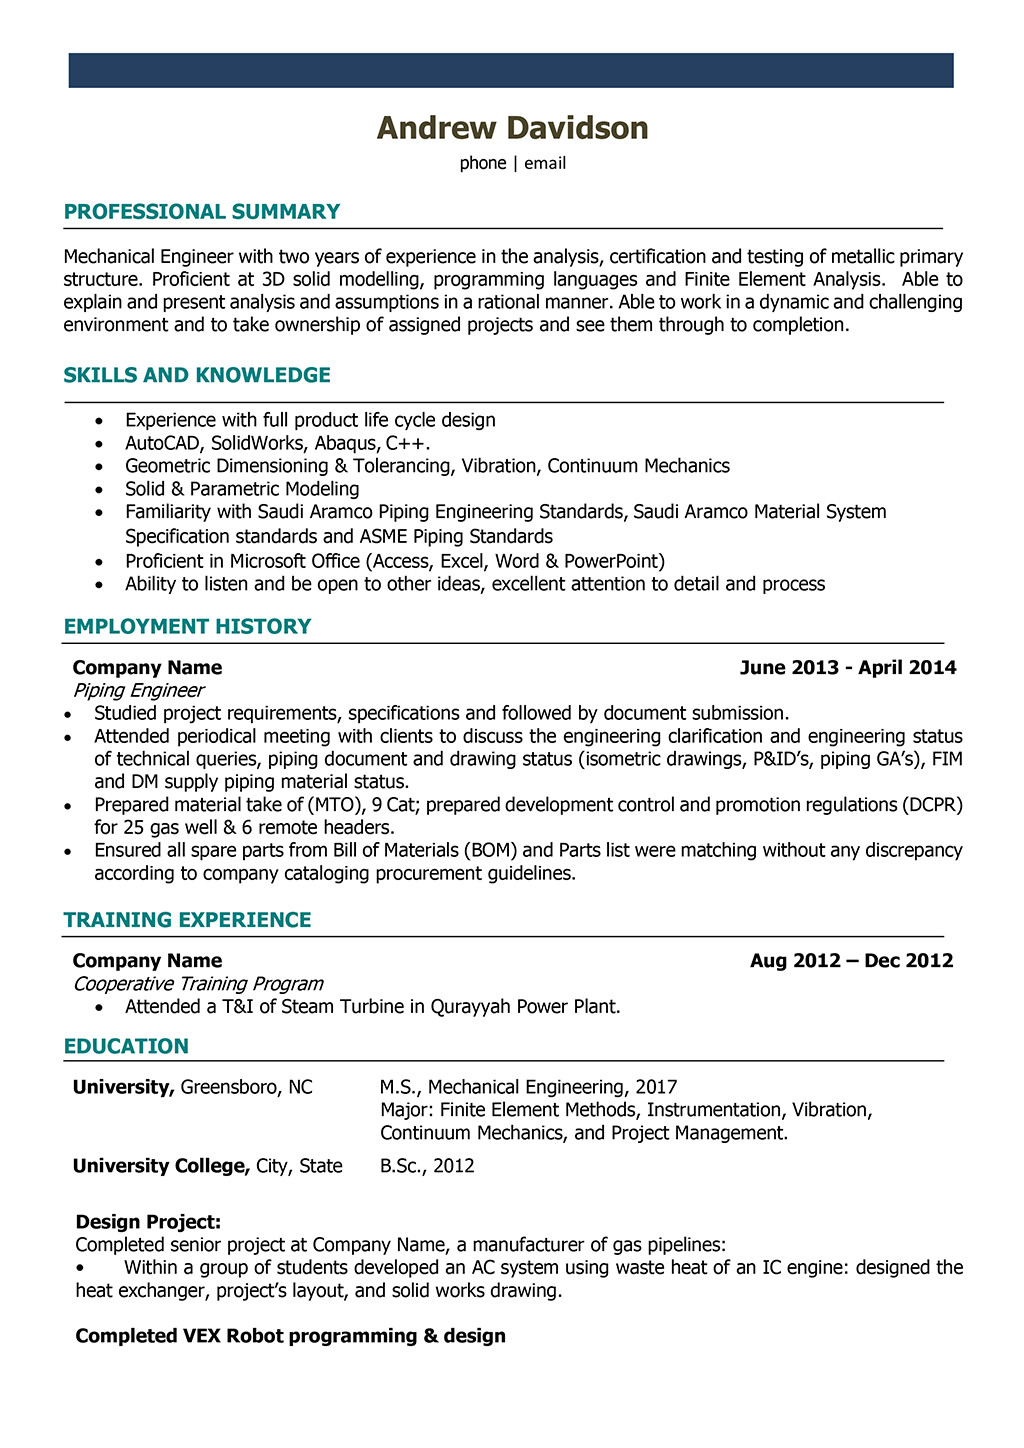 Mechanical Engineering Resume Template Mechanical Engineer Resume Samples and Writing Guide [10